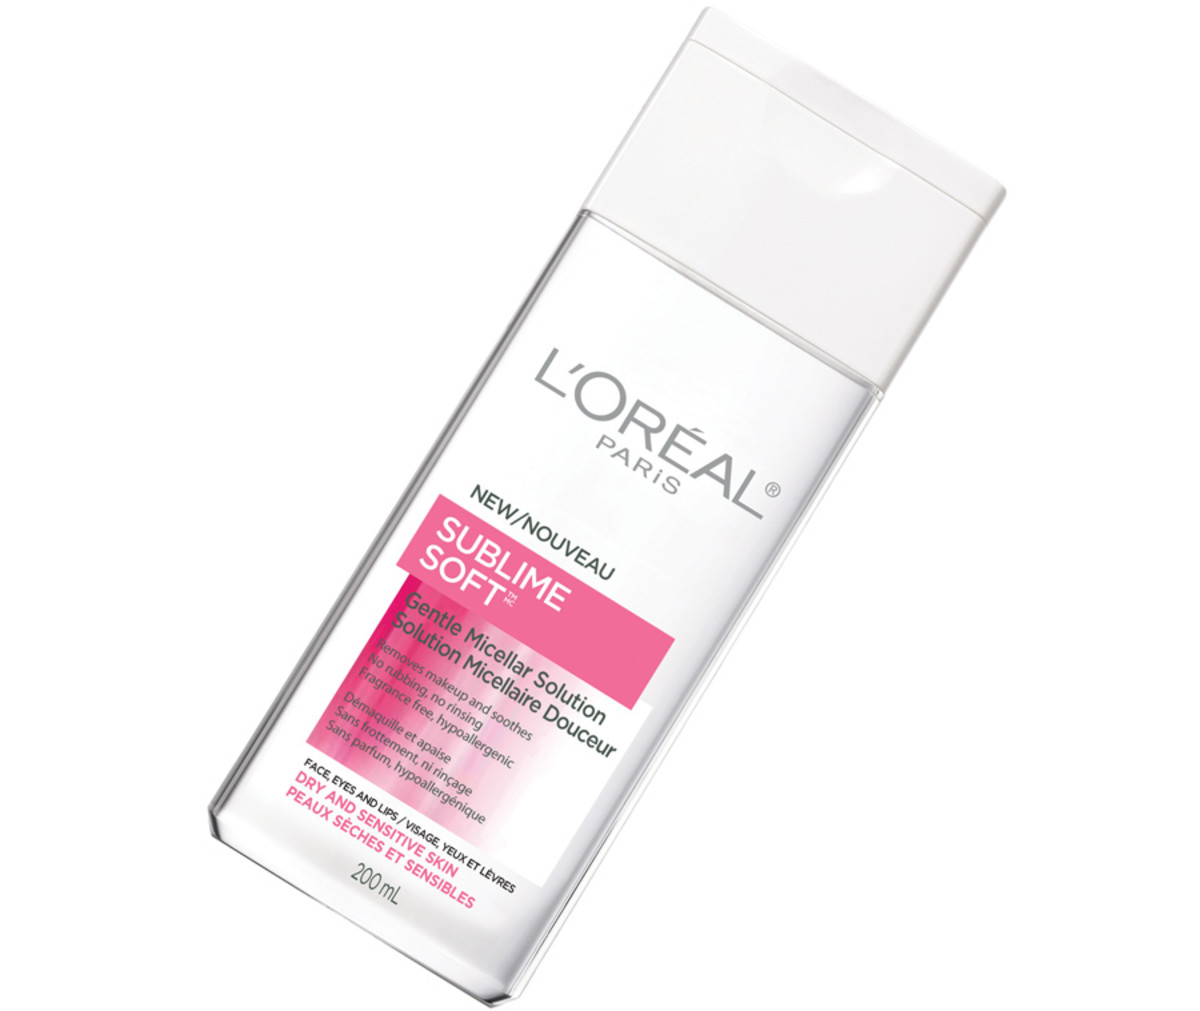 Micellar cleanser that doesn't sting eyes_L'Oreal Paris Sublime Soft Gentle Micellar Solution